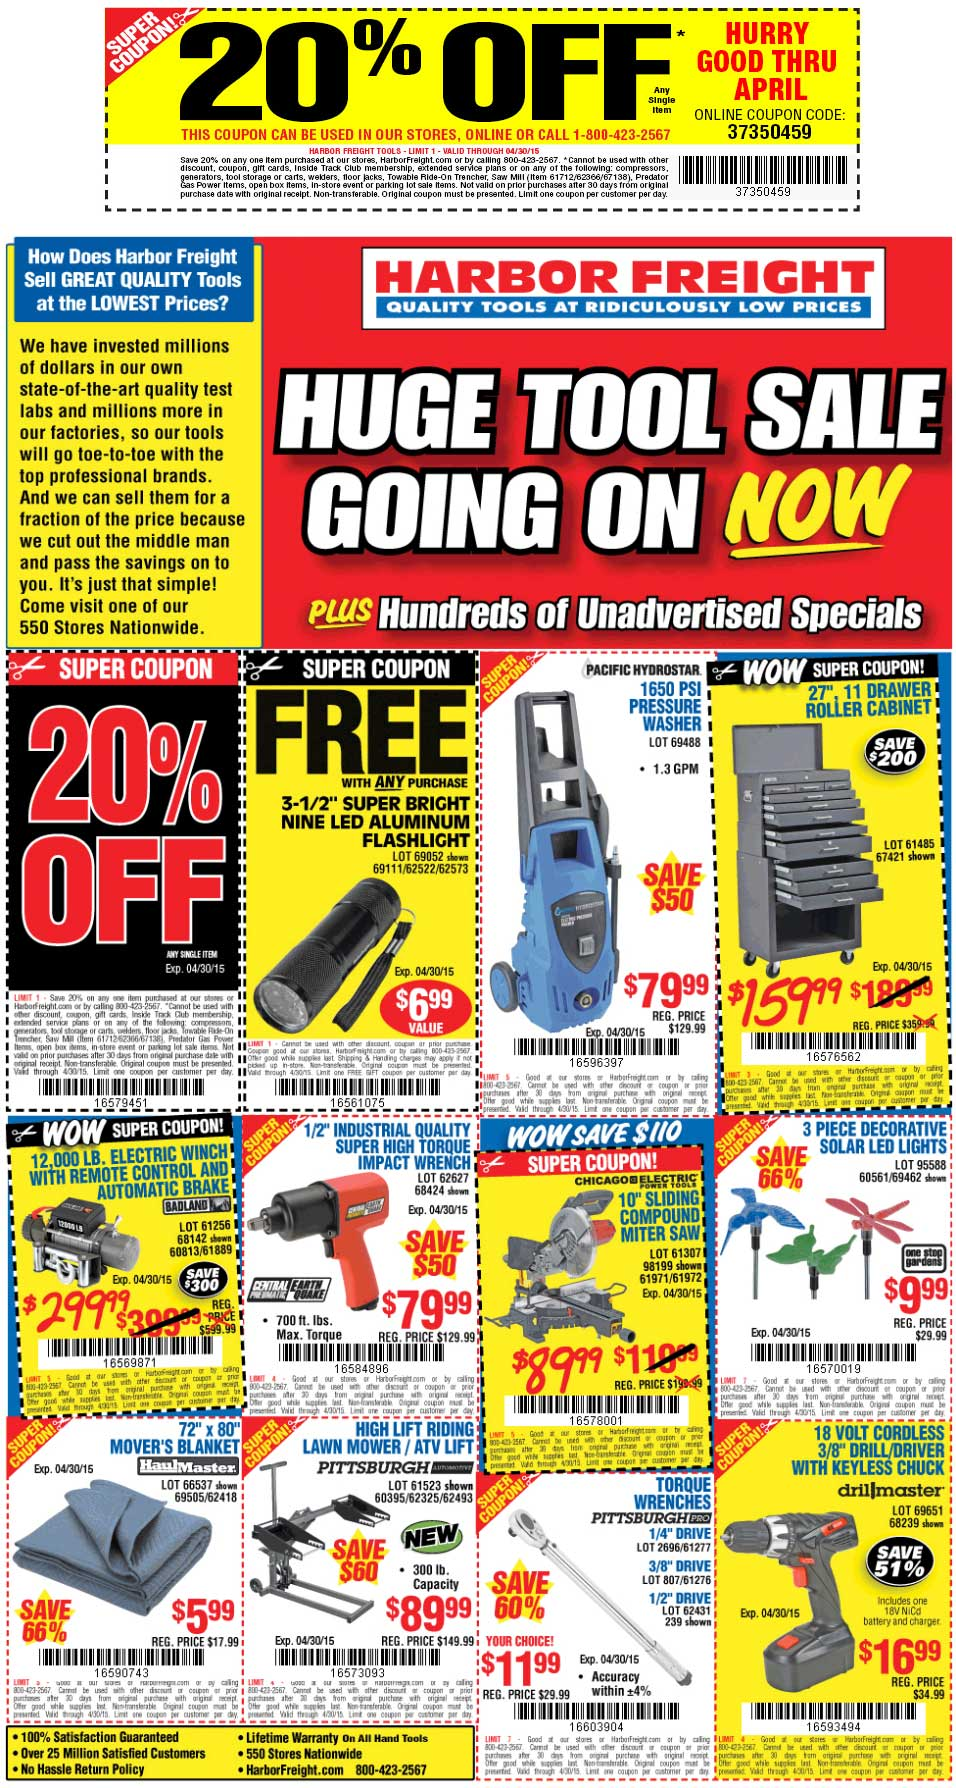 Harbor Freight Coupon December 2017 20% off a single item at Harbor Freight Tools, or online via promo code 37350459